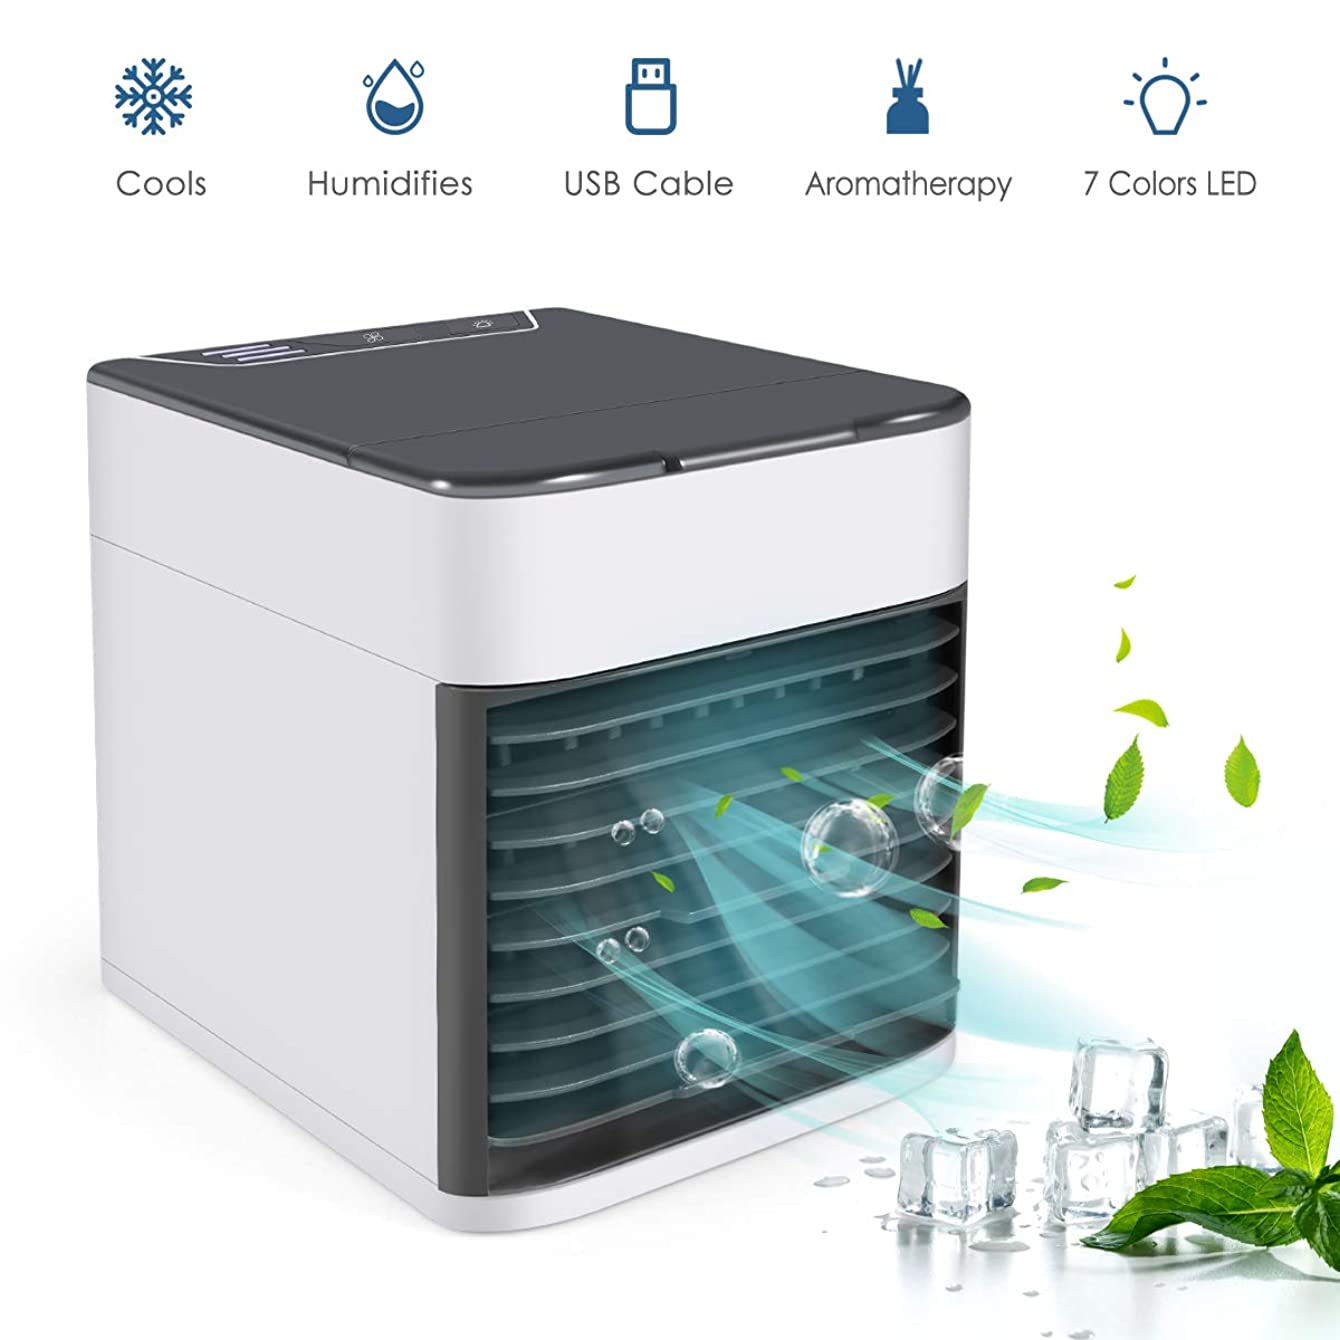 Personal Air Conditioner Fan, 4 in 1 Small Personal USB Air Cooler Mini Air Purifier Humidifier with 7-Colors LED Lights, Air Cooler Desk Fan Cooling with Portable Handle for Office Home Room